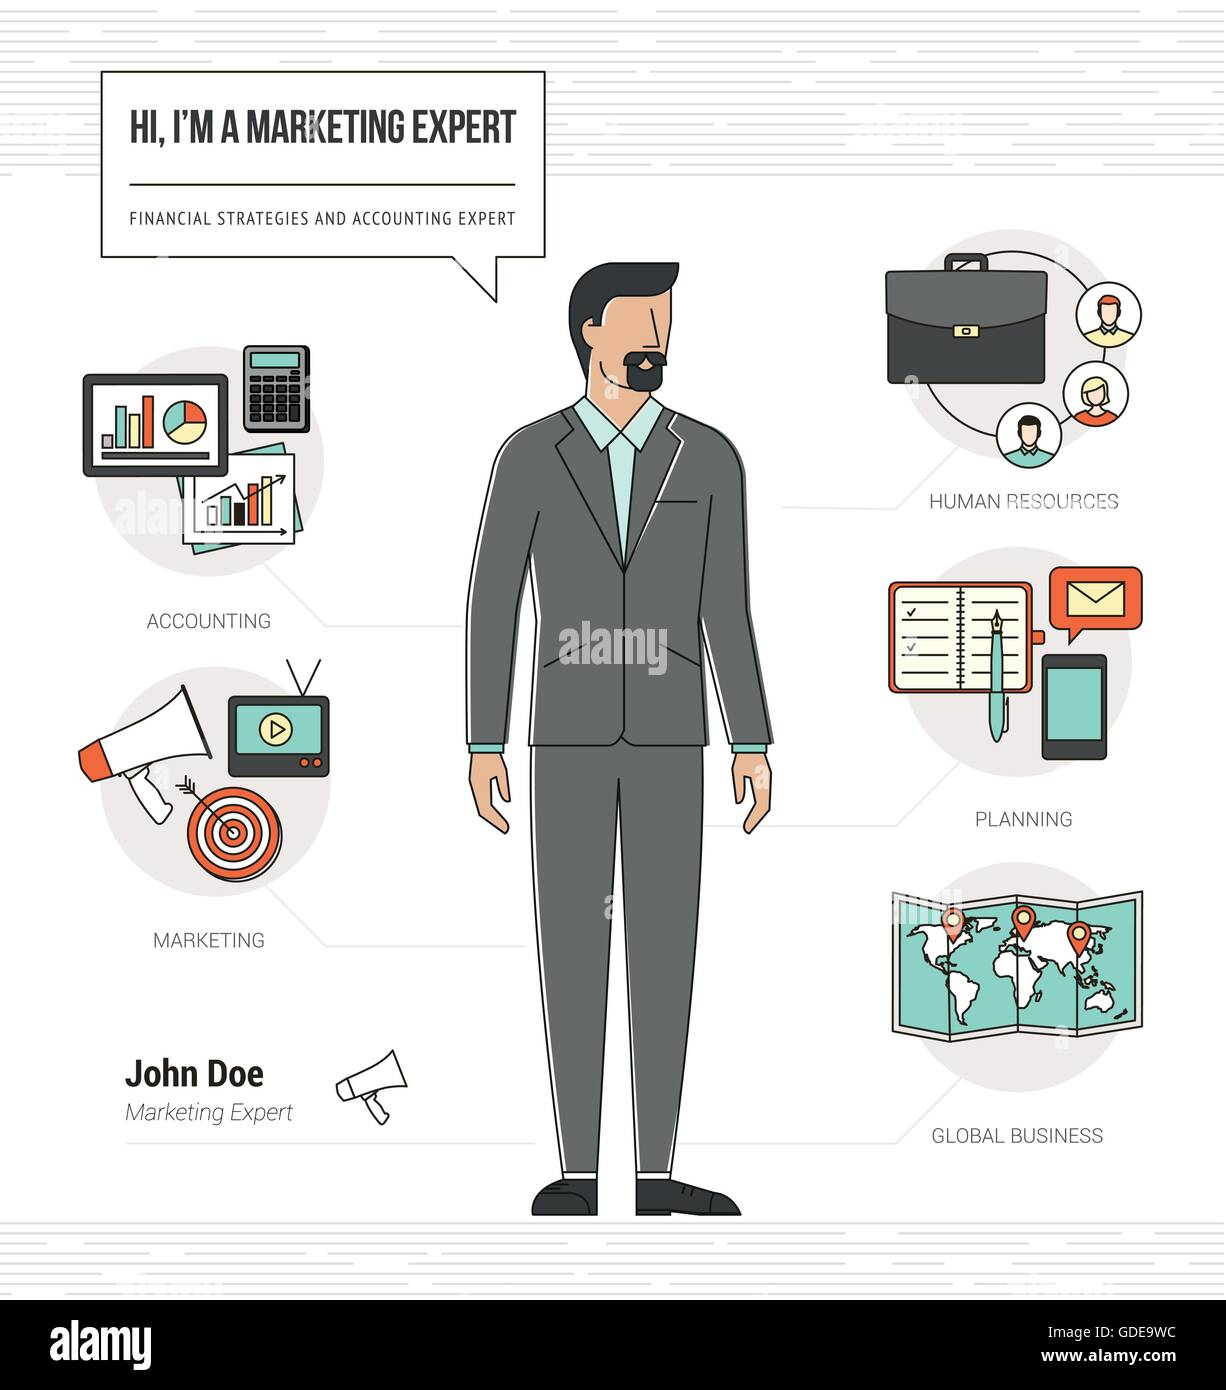 Professional marketing expert infographic skills resume with work ...